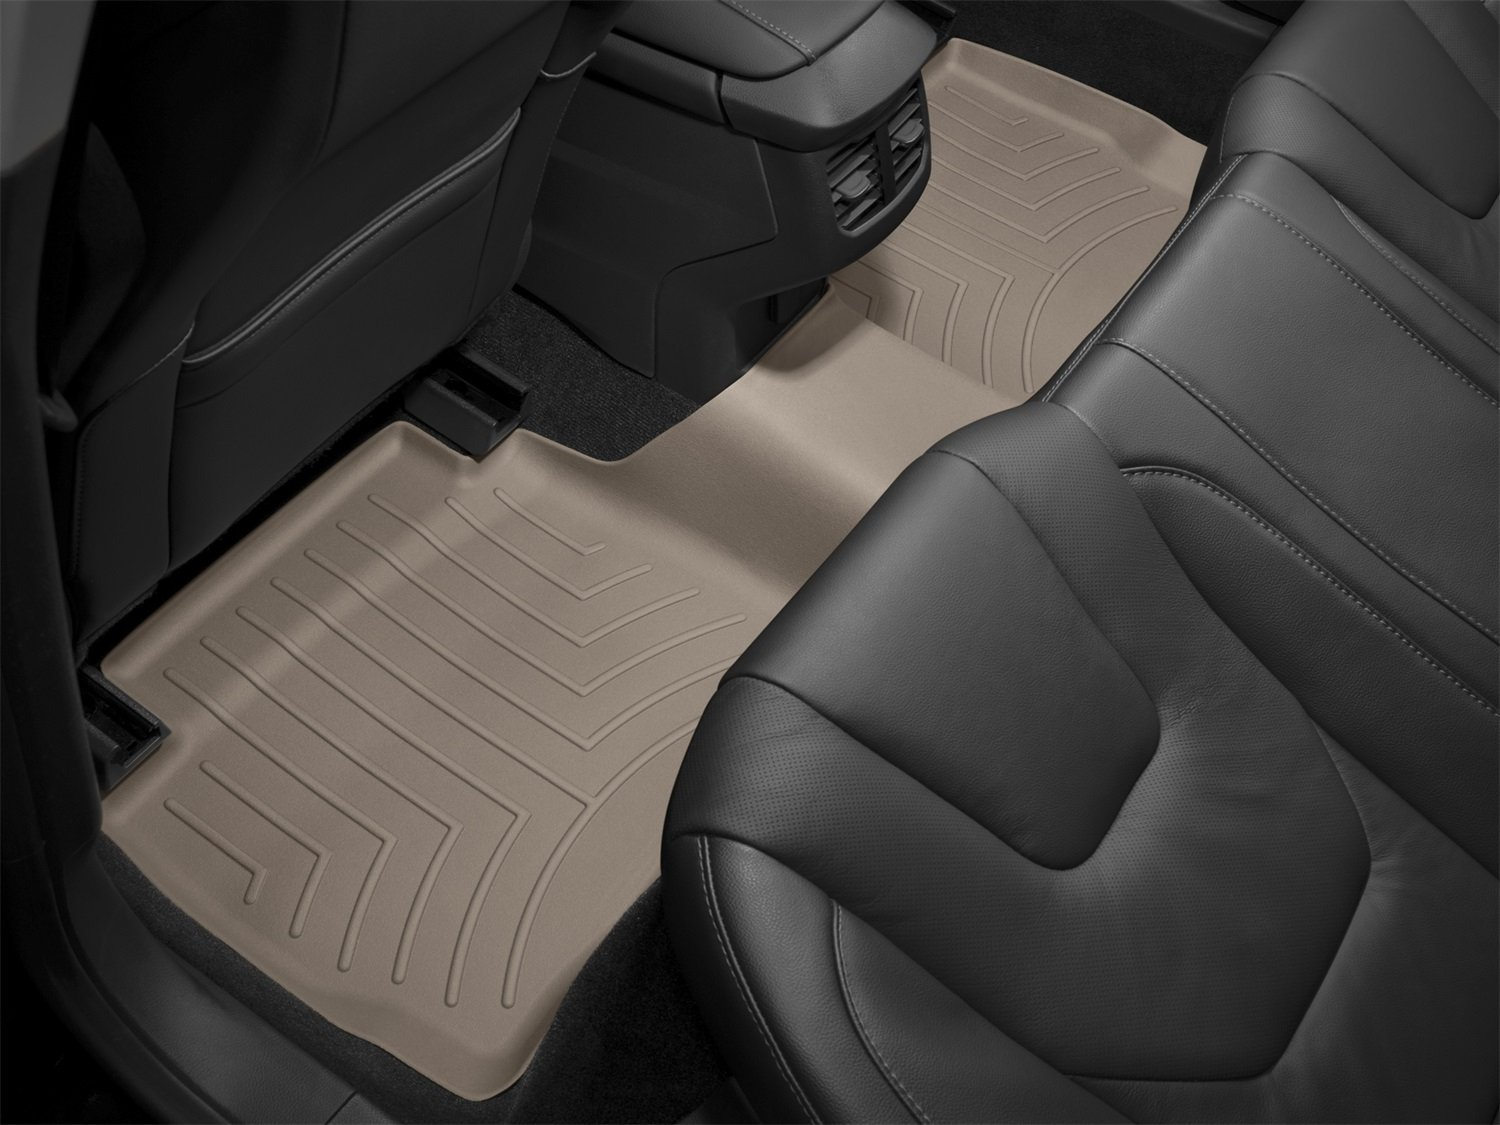 WeatherTech Custom Fit Rear FloorLiner for Chevrolet Silverado Crew Cab 1500 Tan 450623